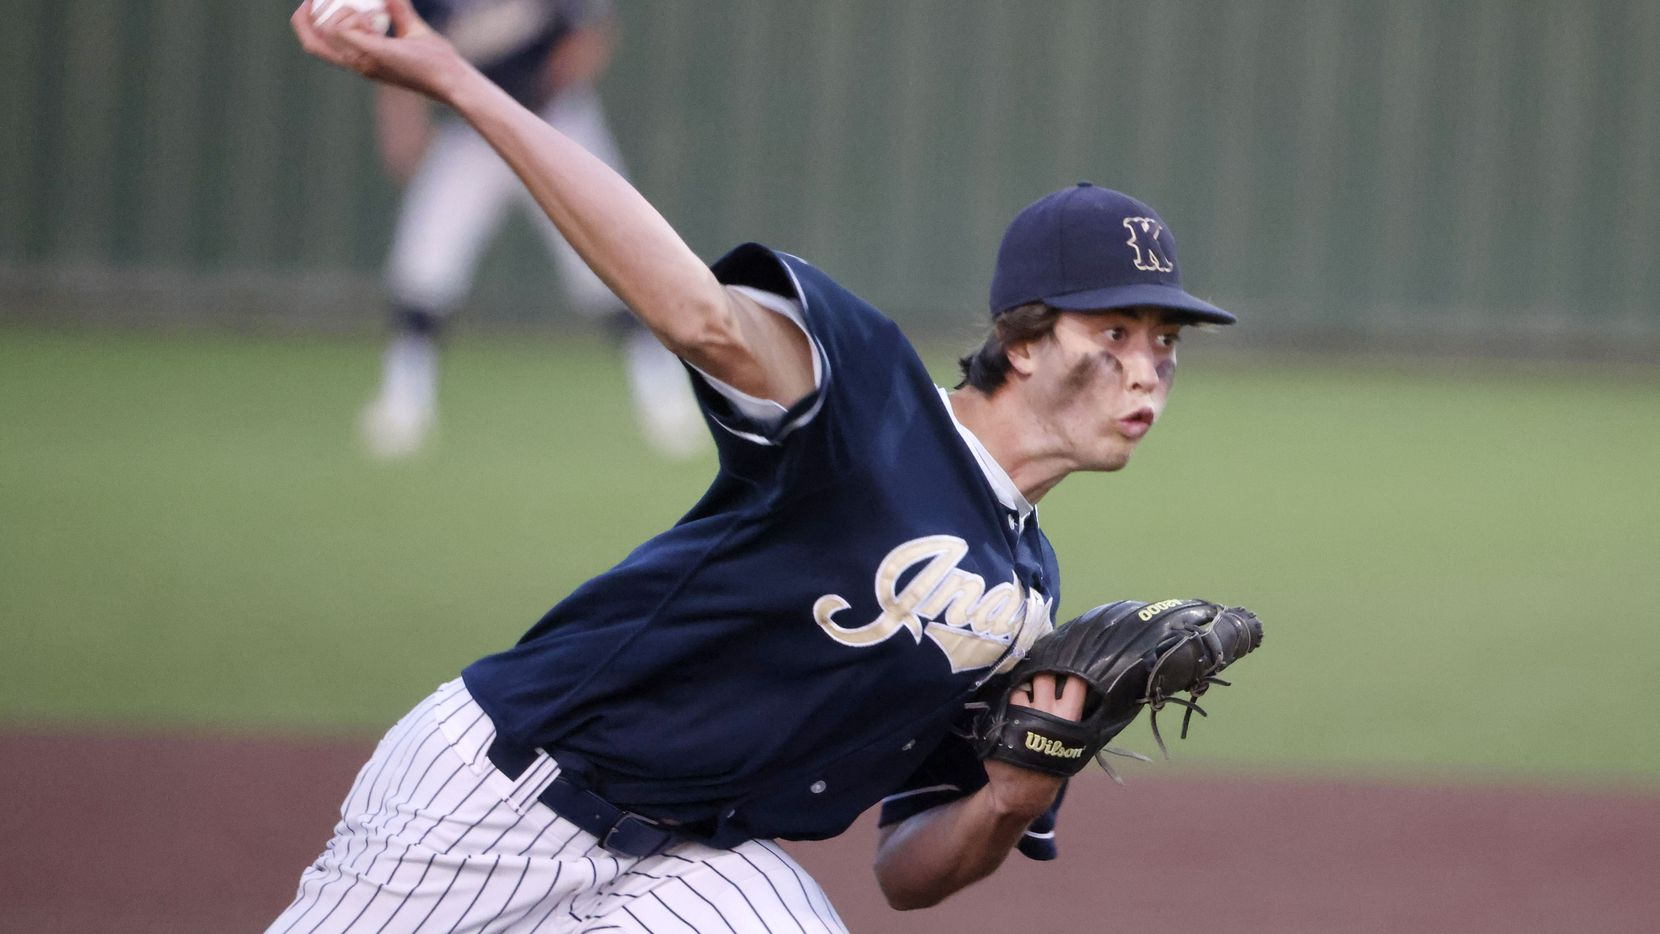 Pitcher Eric Hammond, a USC signee, and the Keller baseball team enter the playoffs ranked No. 2 in the state in Class 6A. The District 4-6A champion will open the playoffs against Weatherford.